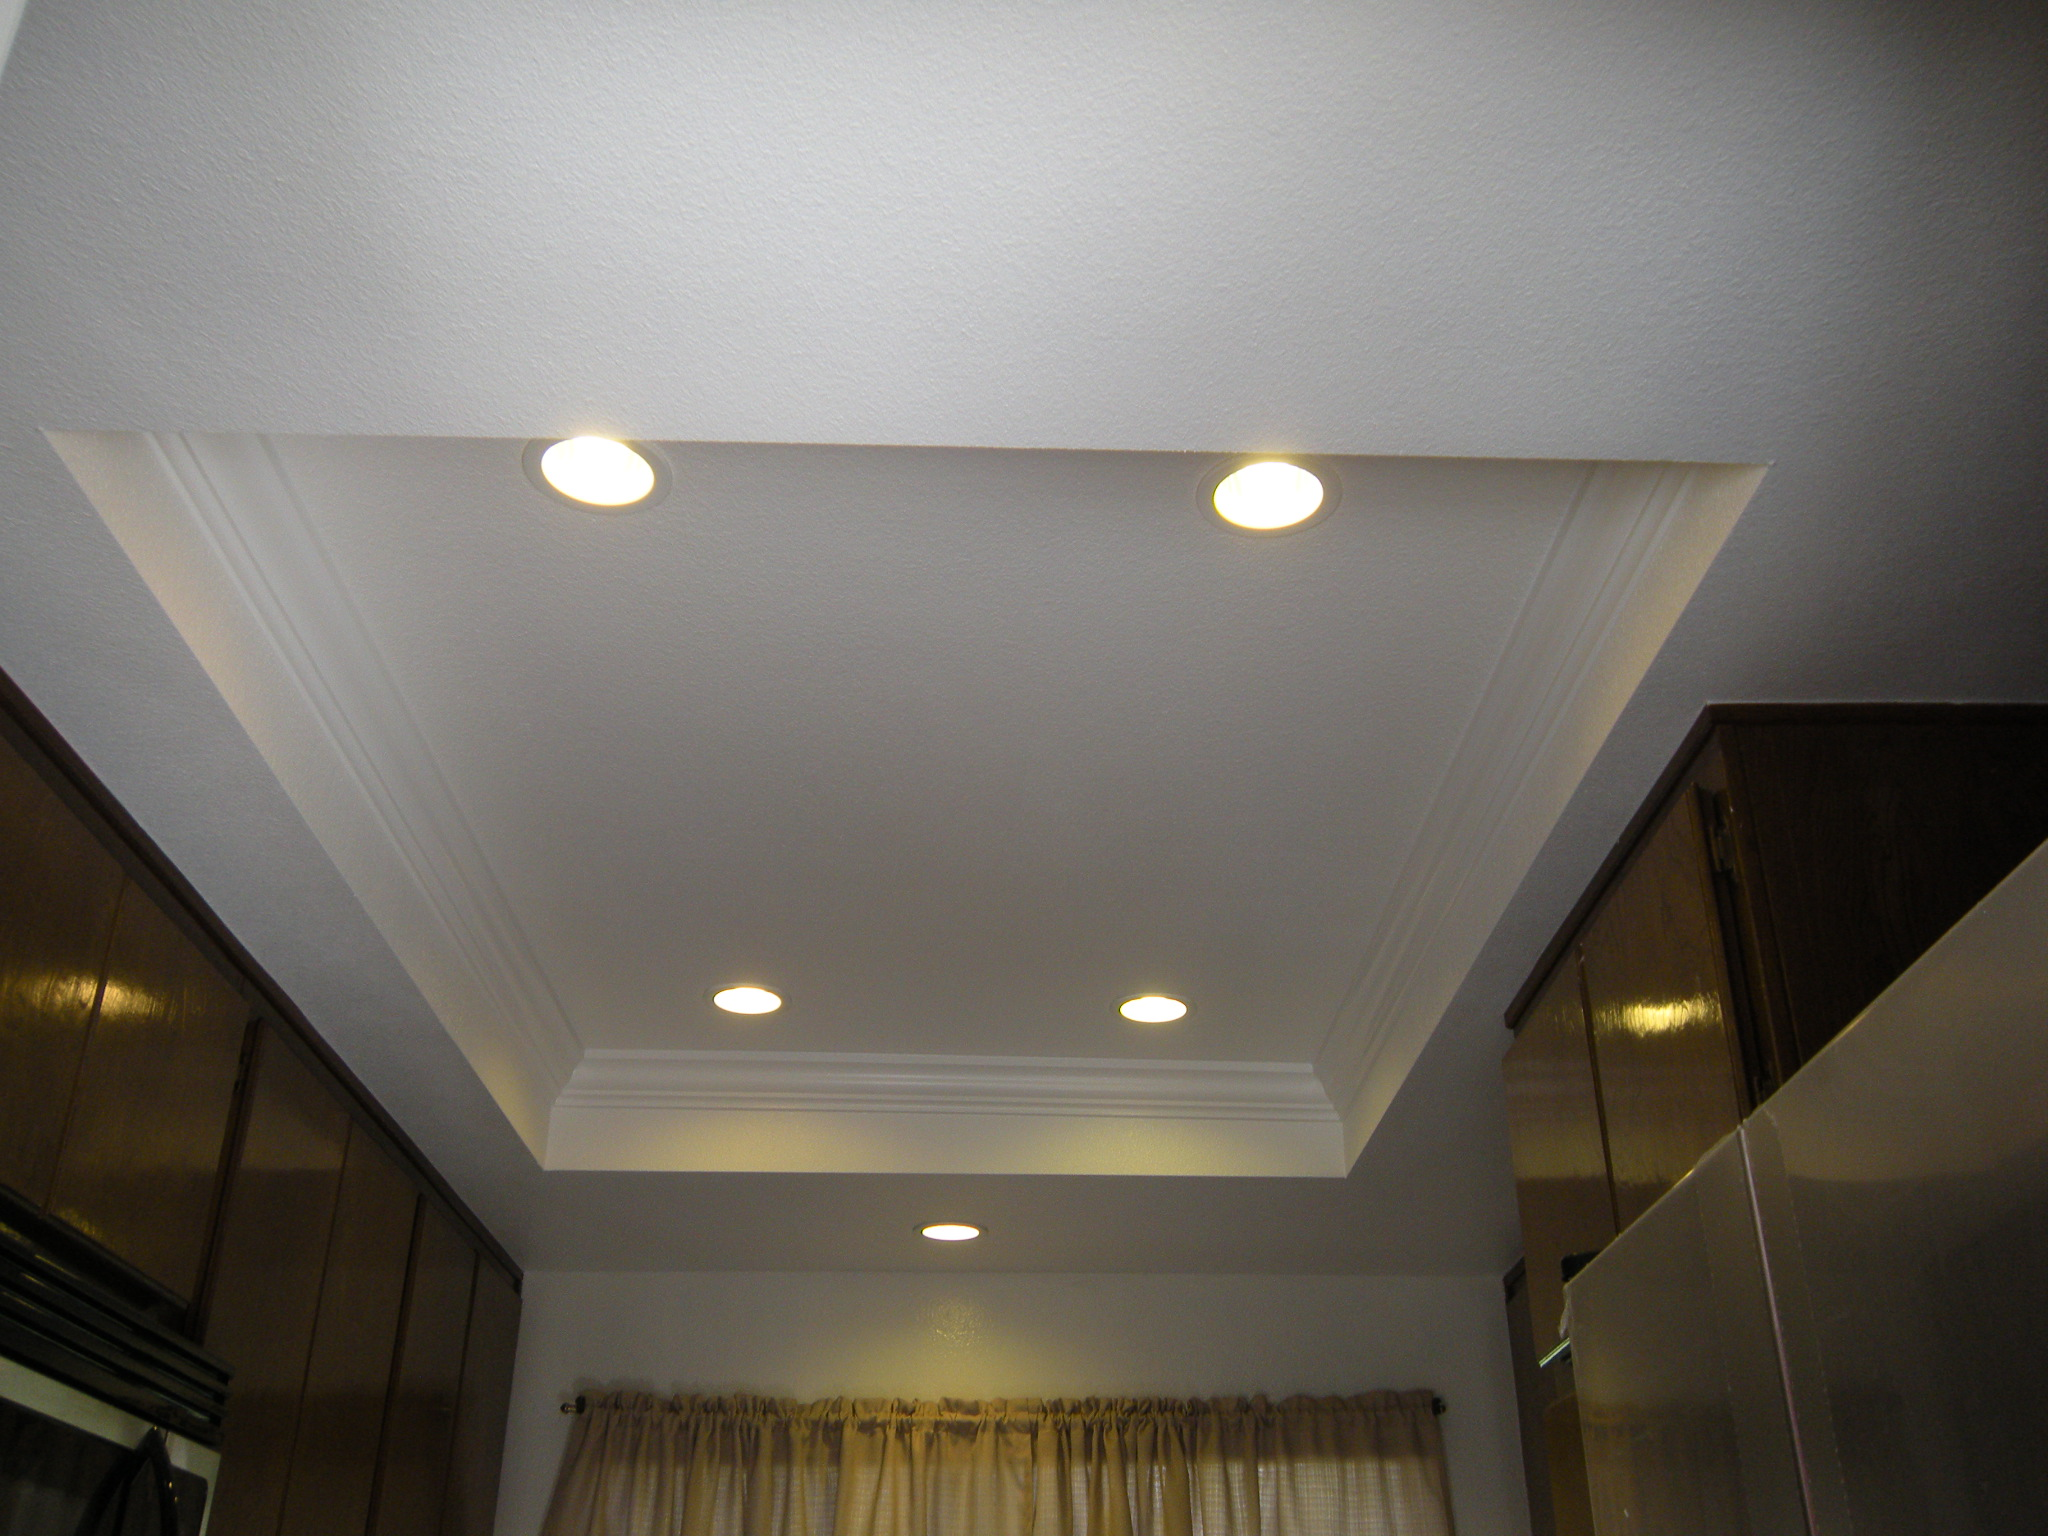 1o Reasons To Install Ceiling Recessed Lights Warisan Lighting